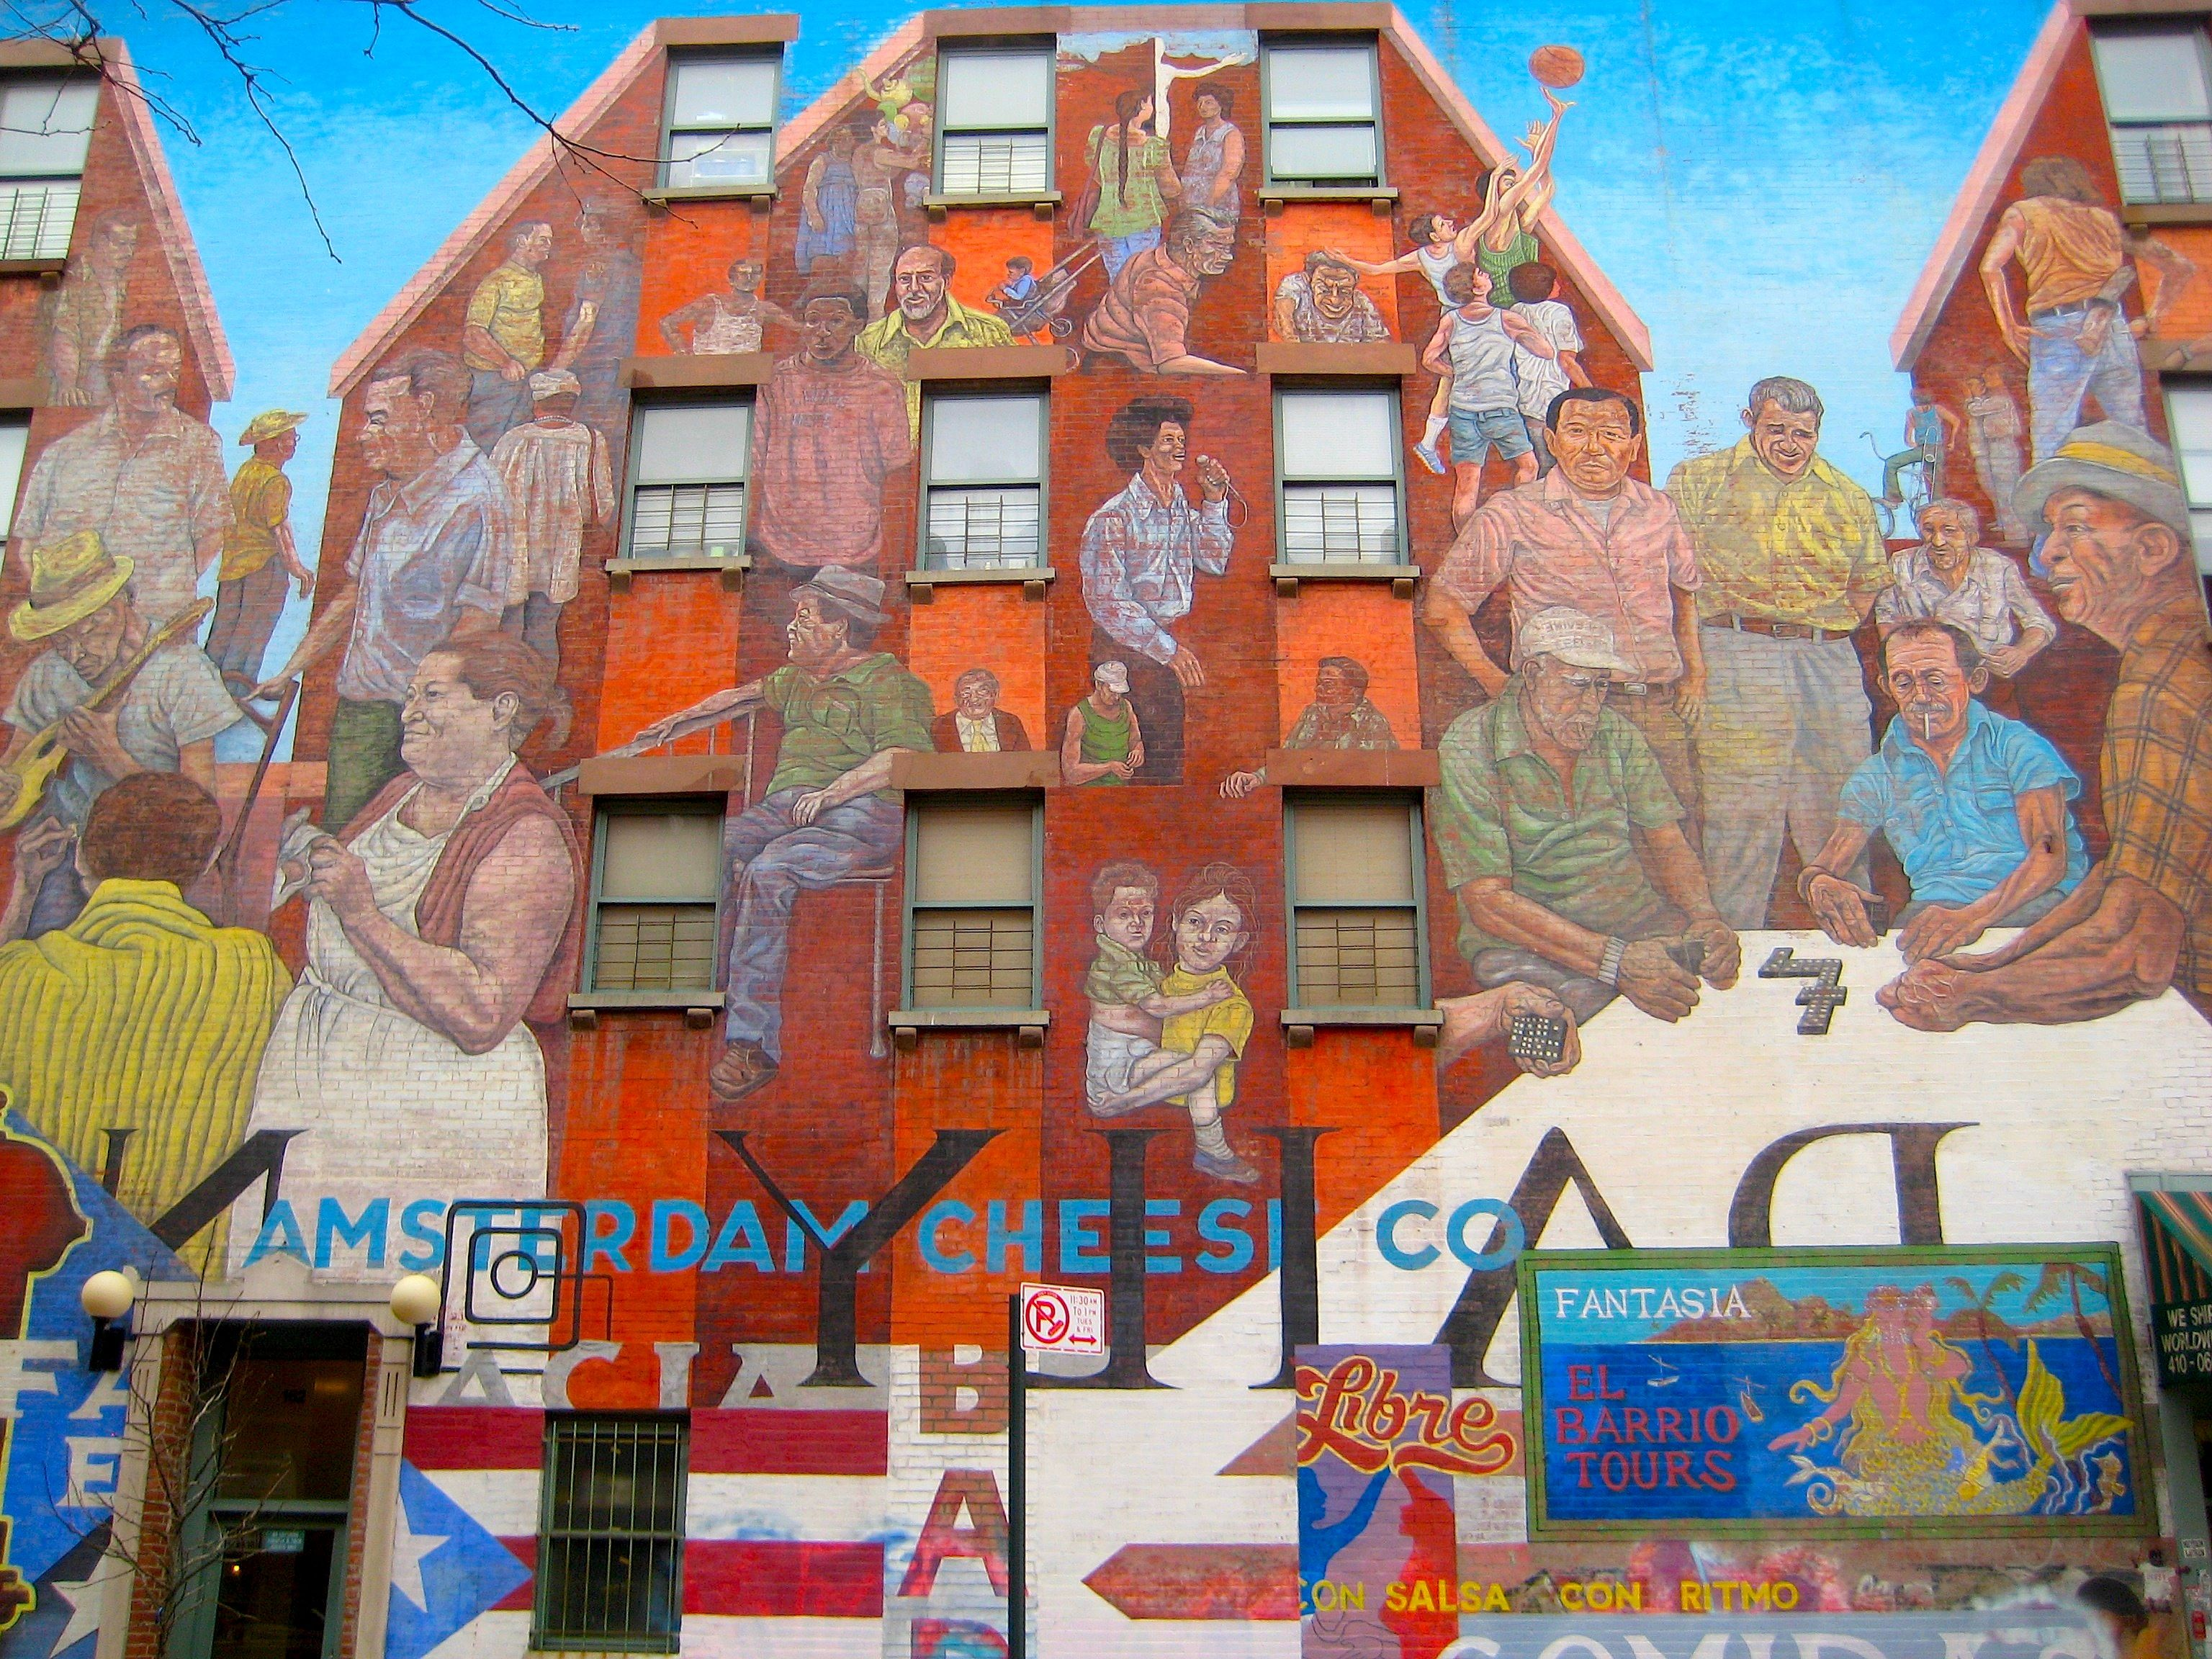 Harlem spent time with their juvenile justice program and